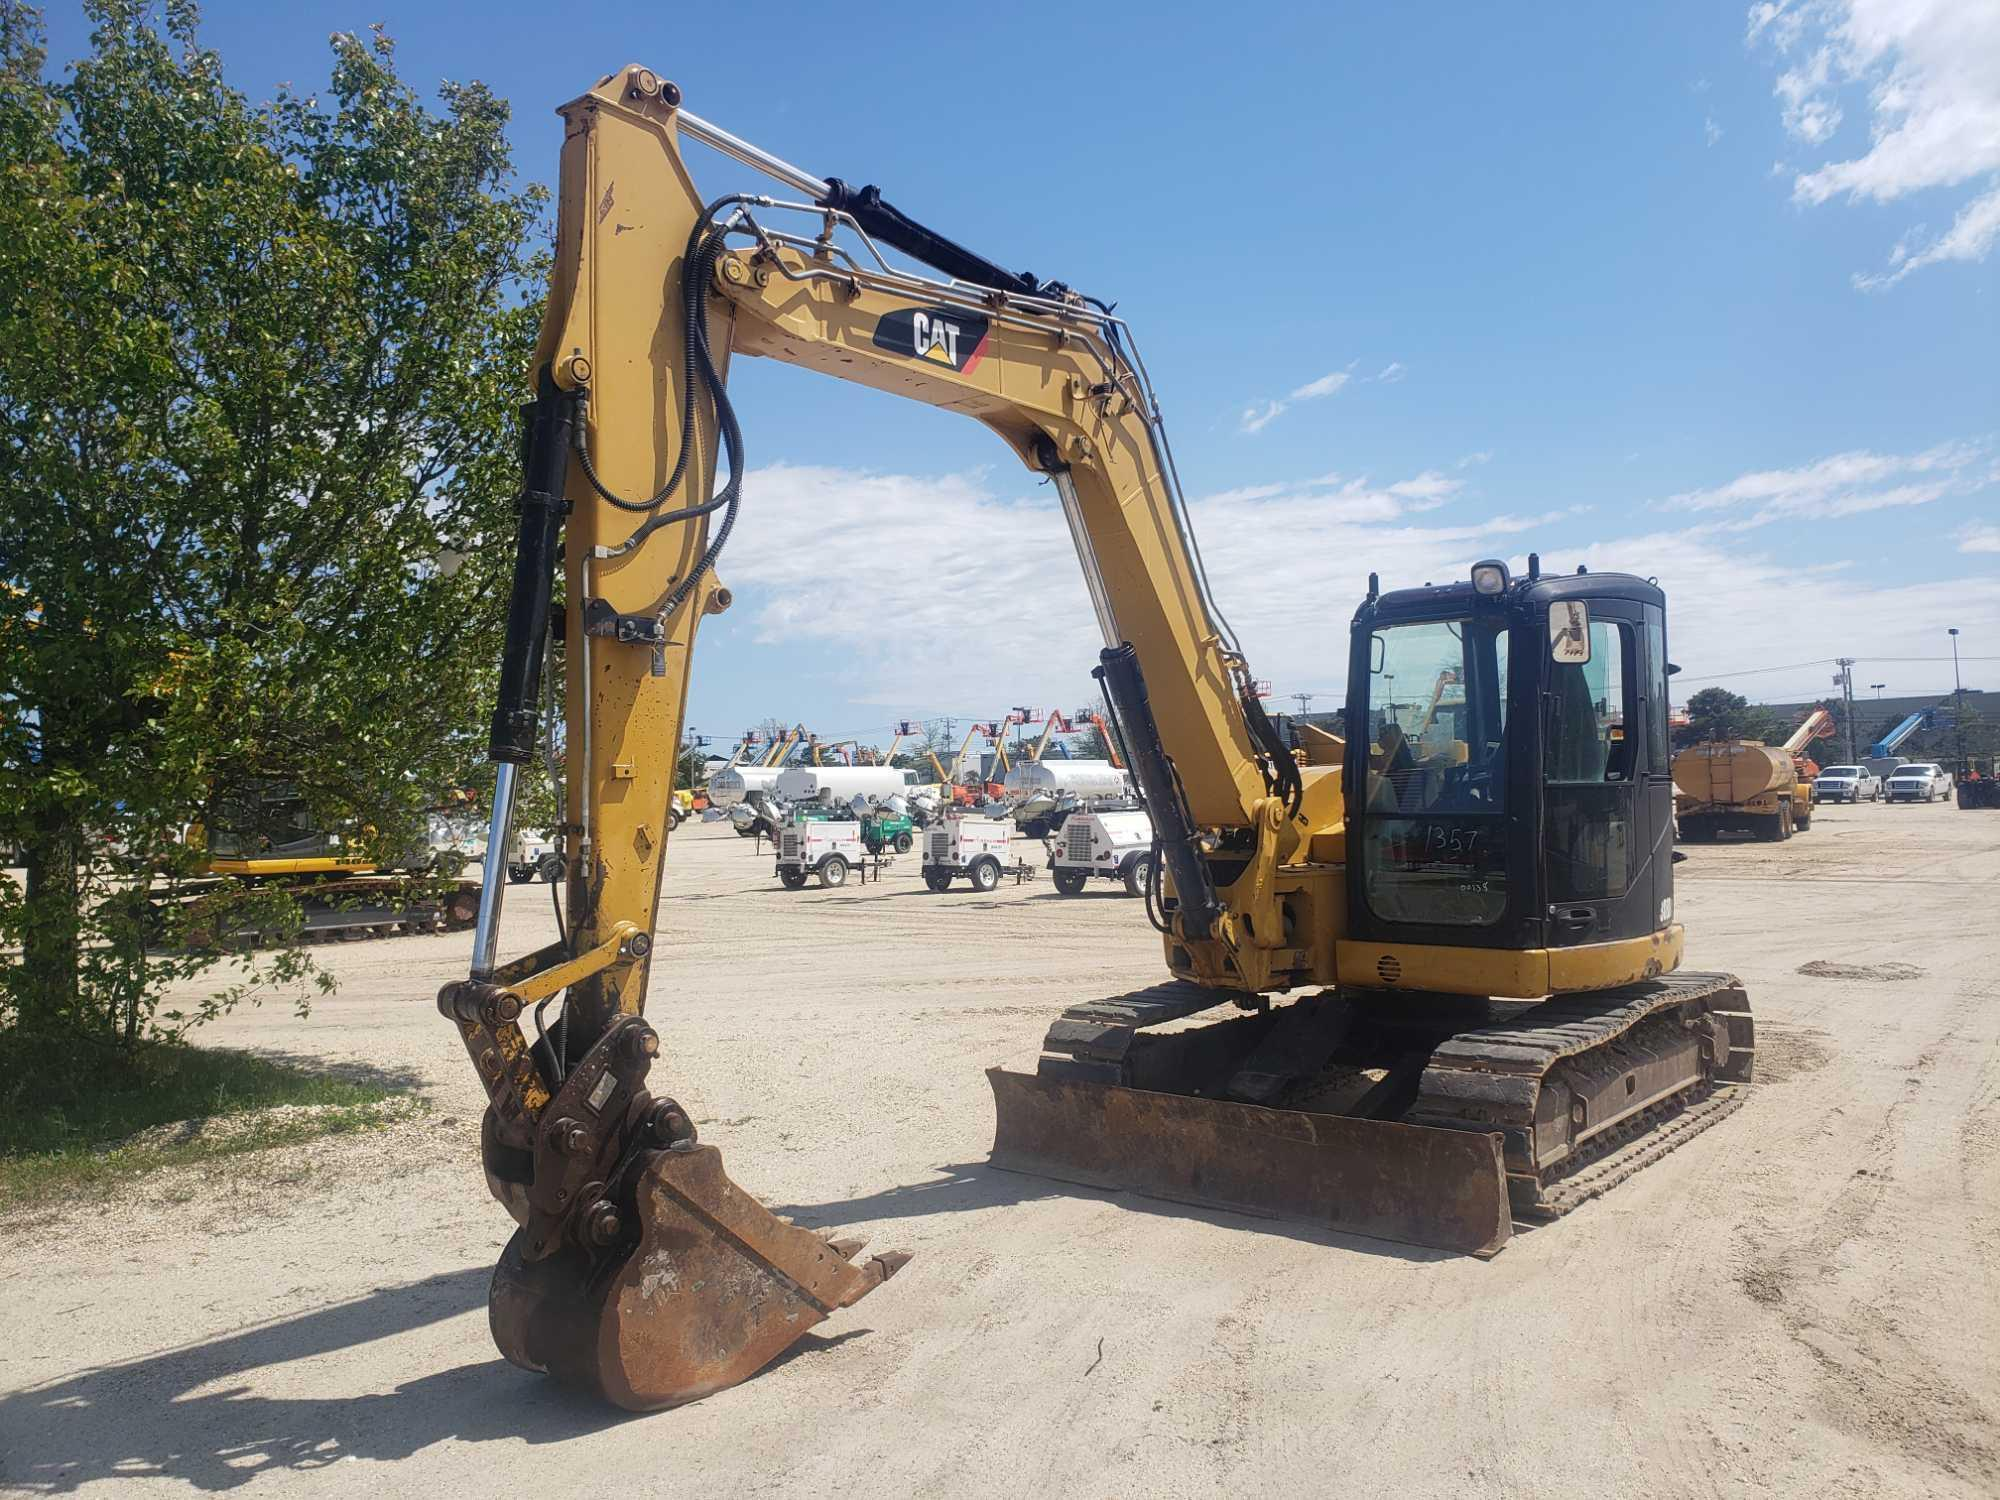 CAT 308DCR HYDRAULIC EXCAVATOR Powered By Cat Diesel